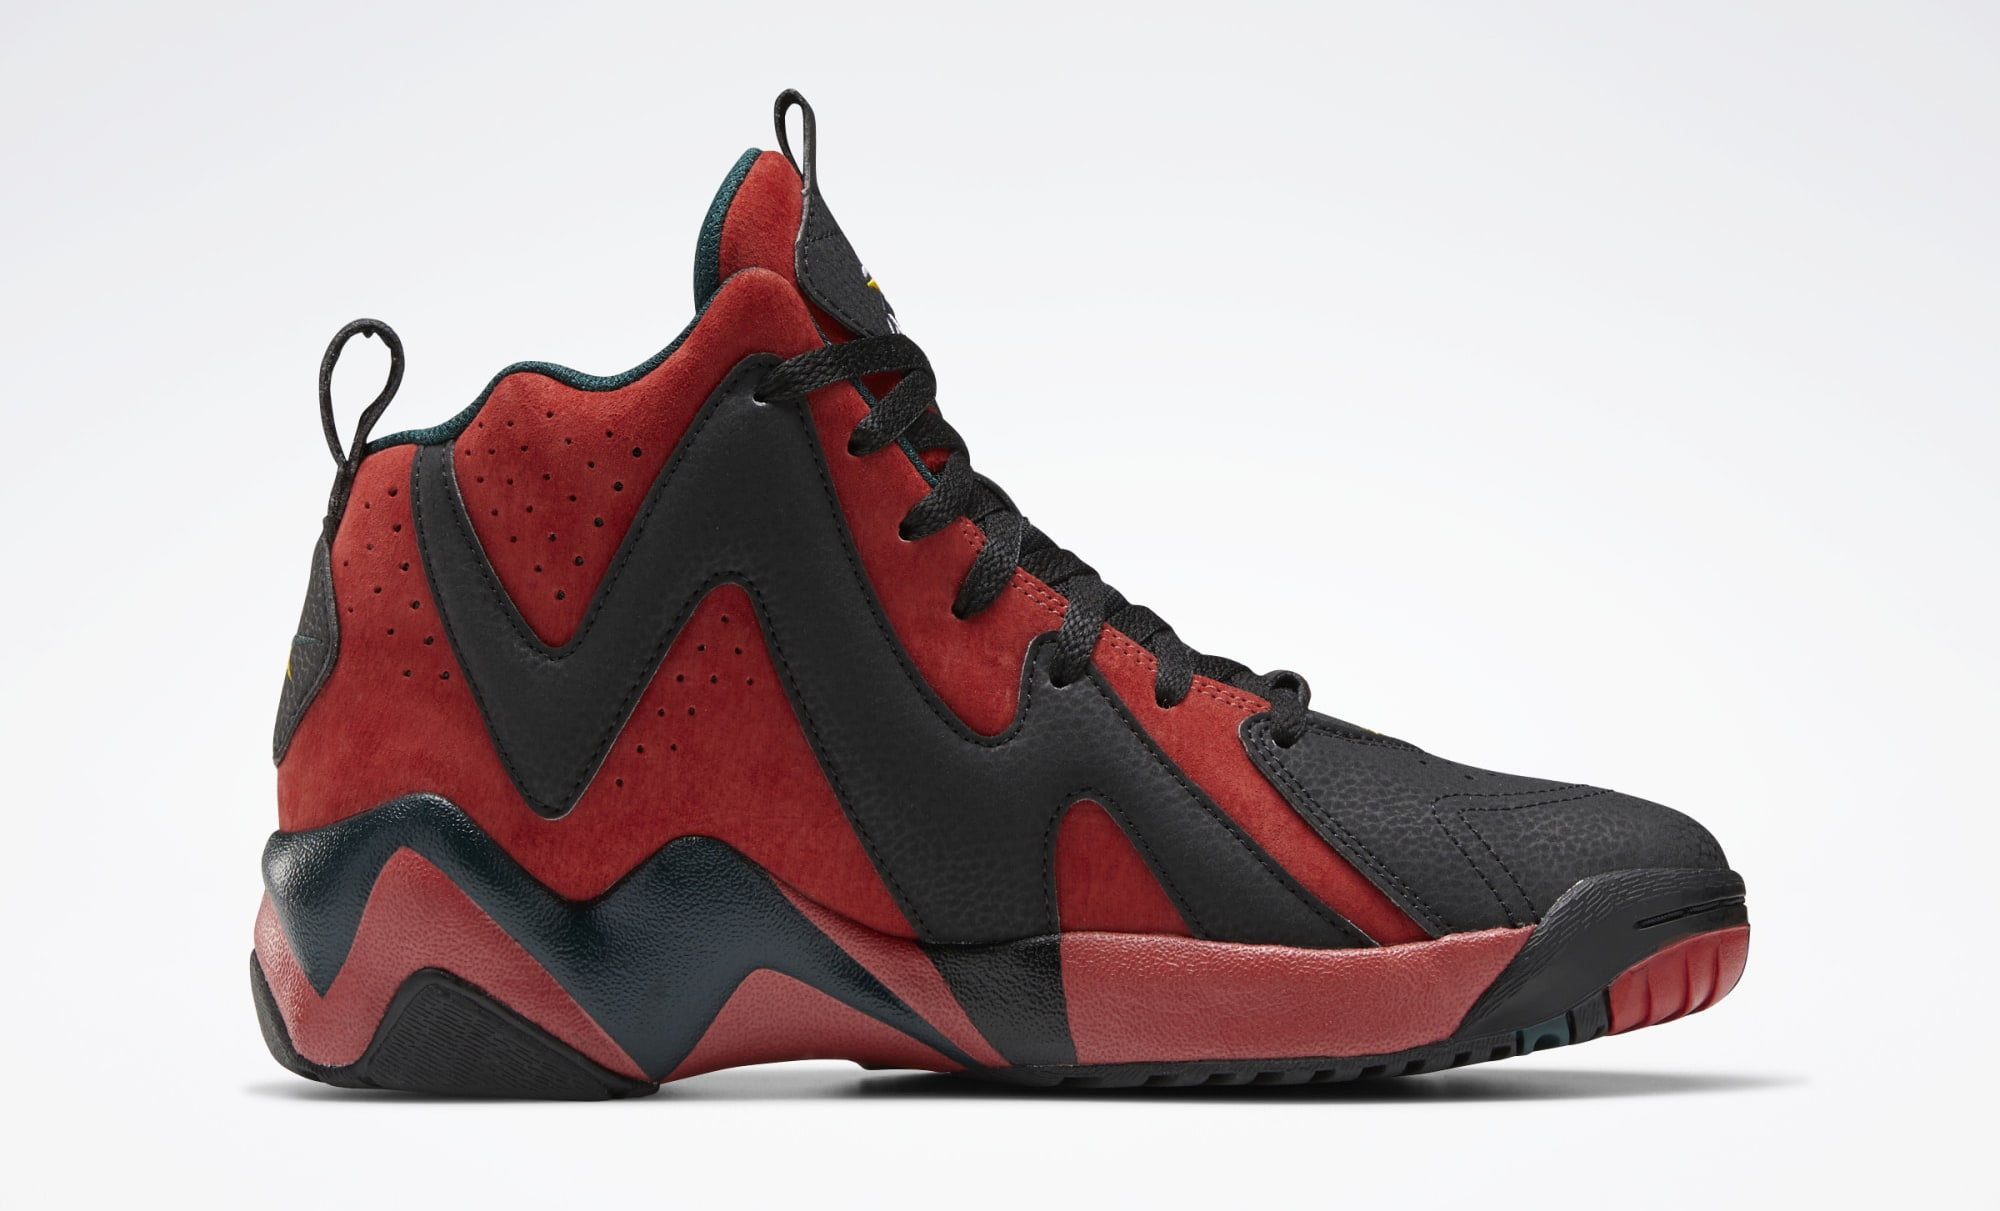 Reebok Kamikaze 2 'Alternates' FZ4006 Medial